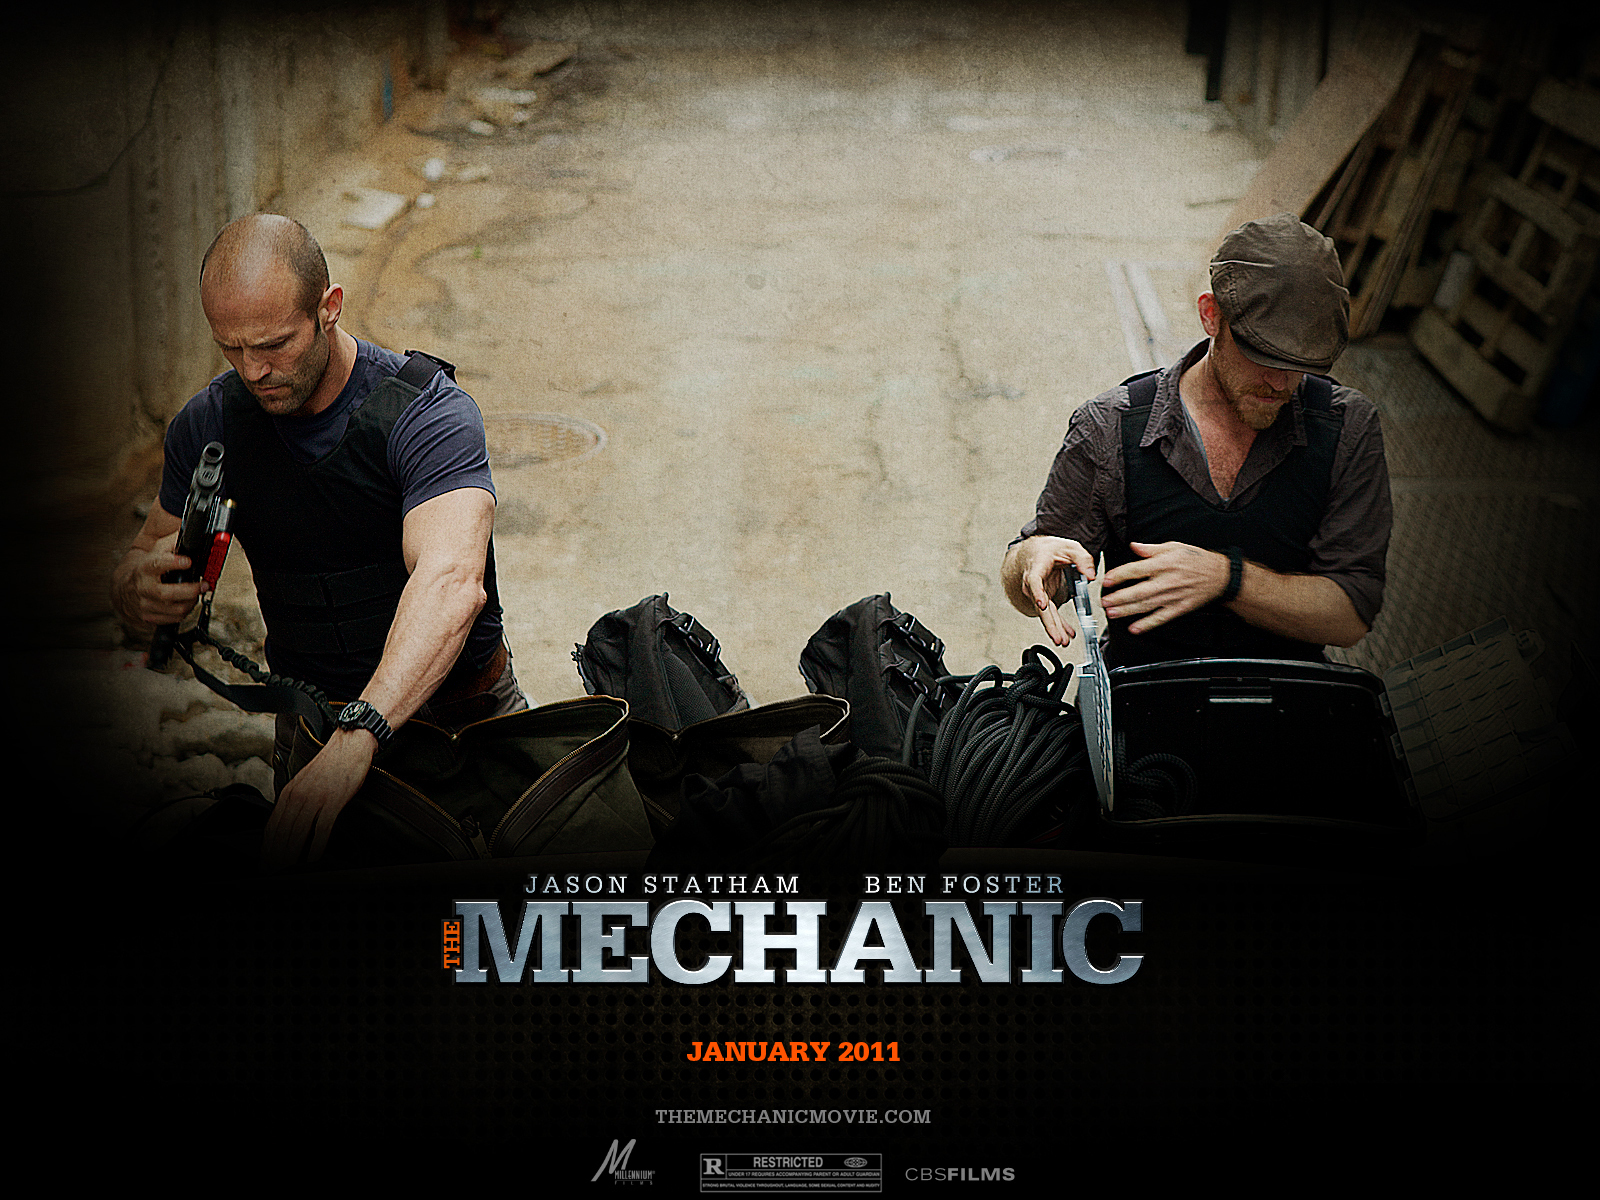 http://3.bp.blogspot.com/-itq97SA4zI4/T85wkCynwzI/AAAAAAAAAyM/bd2tP4INLko/s1600/The-Mechanic-the-mechanic-2011-18474387-1600-1200.jpg